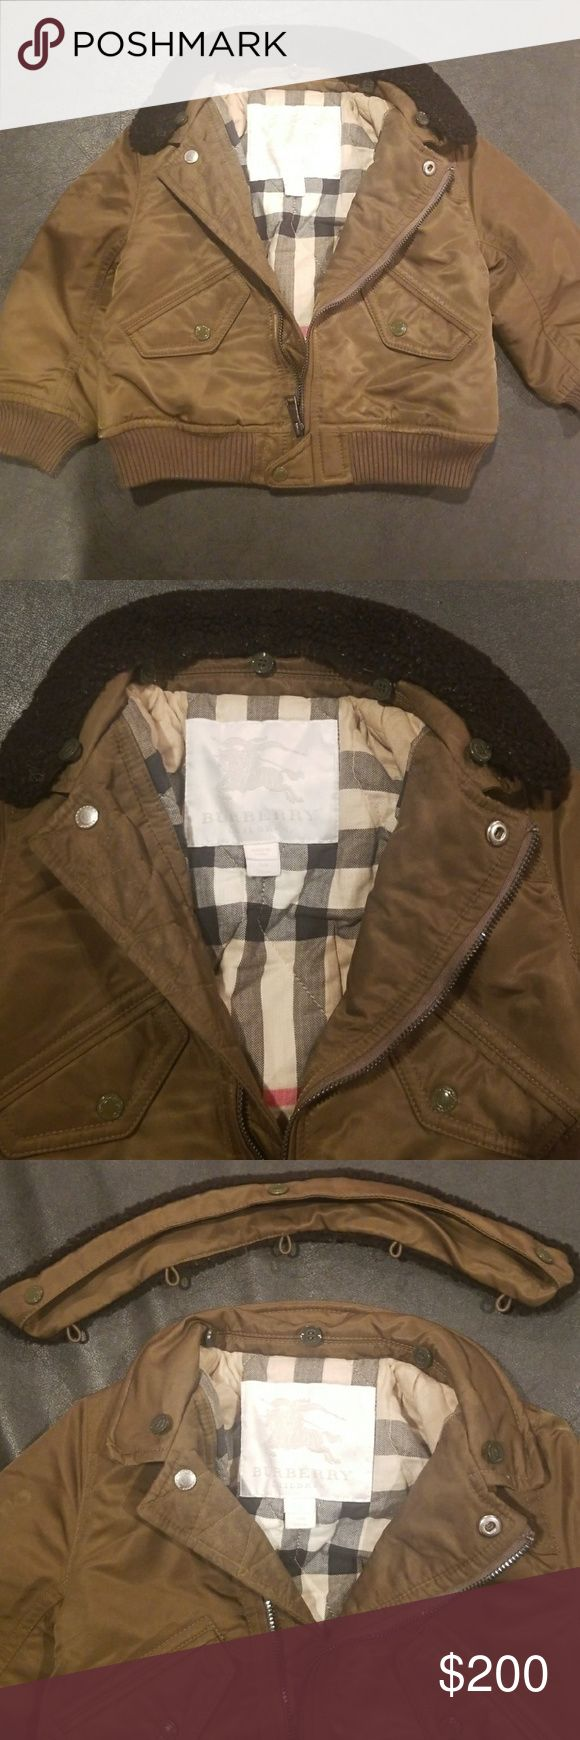 12 month burberry bomber jacket 12 month green burberry bomber jacket.  Can attach unattach neckline. Has a water mark on right and left arm. Burberry Jackets & Coats